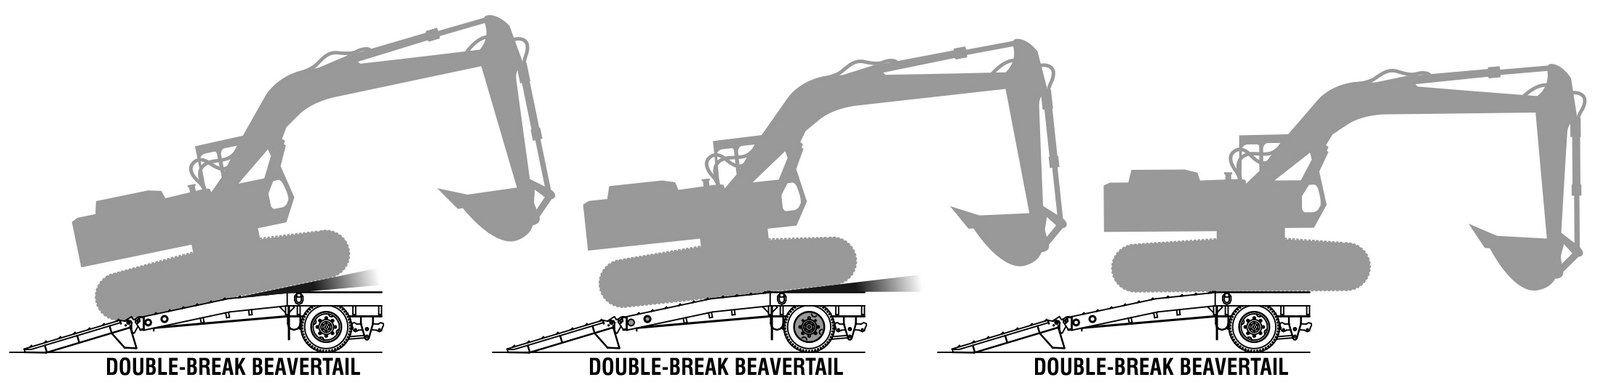 With our double-break beavertail, tracked equipment eases onto the deck better, making loading and unloading easier on the operator and equipment.